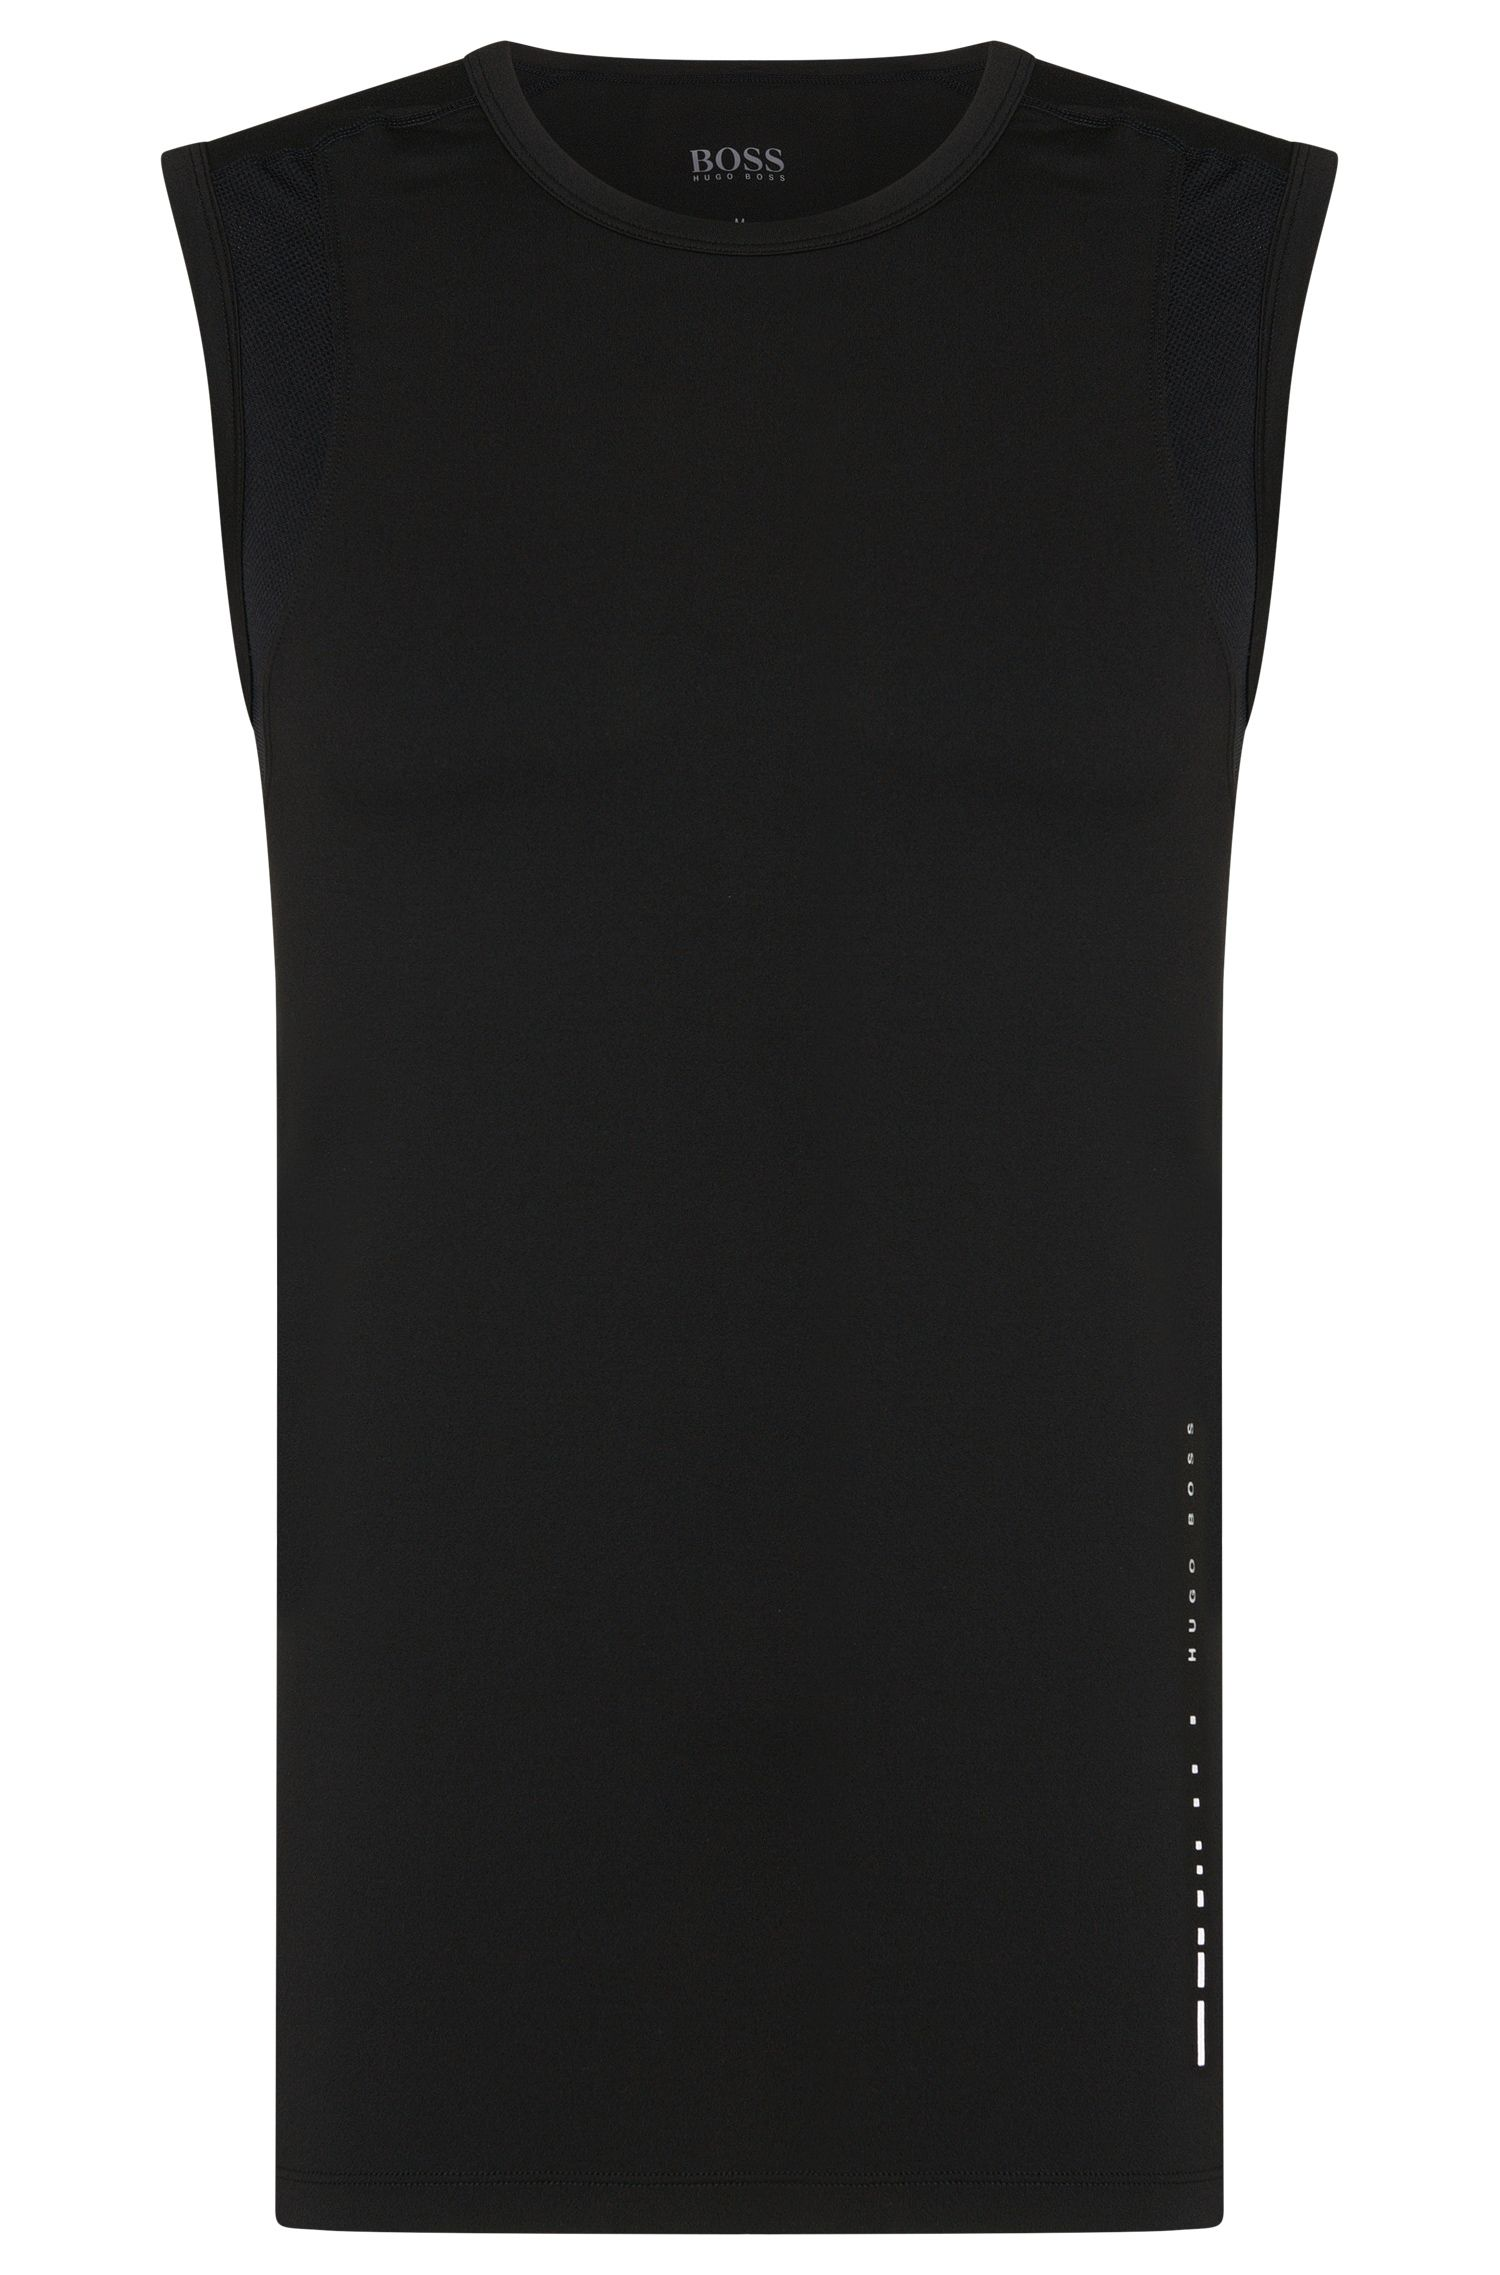 Sleeveless T-shirt in technical stretch fabric